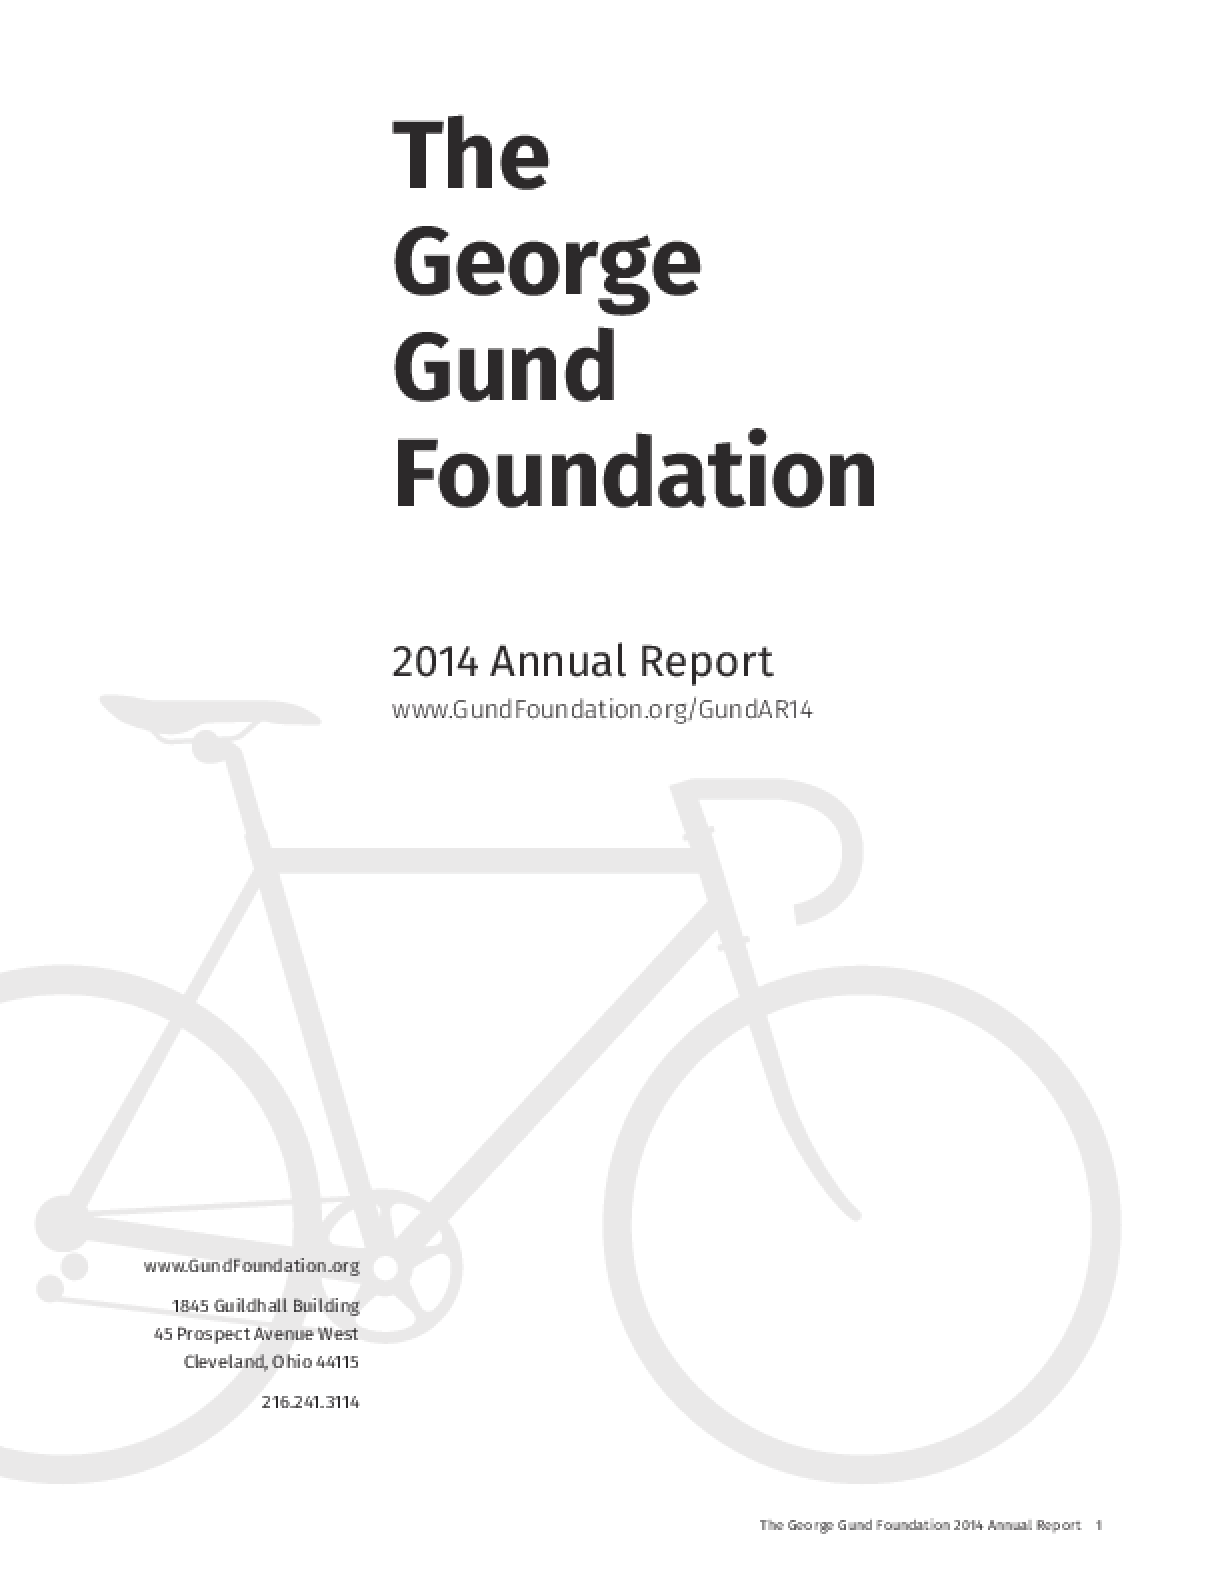 The George Gund Foundation 2014 Annual Report